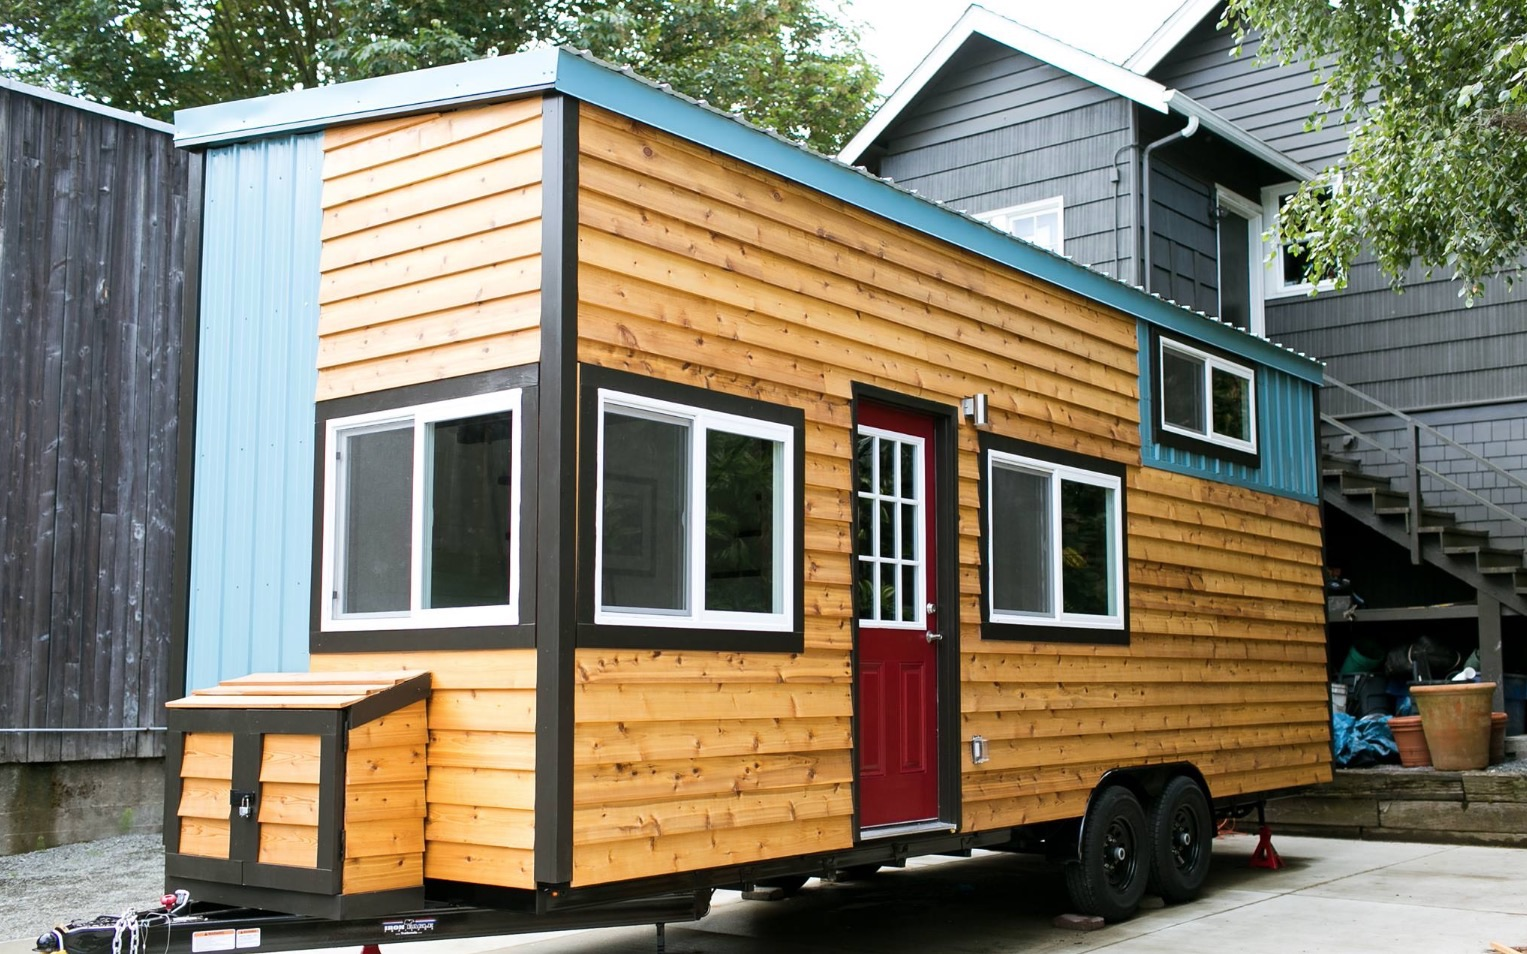 Tiny Homes Near Me Tiny Homes On Wheels For Sale Near Me